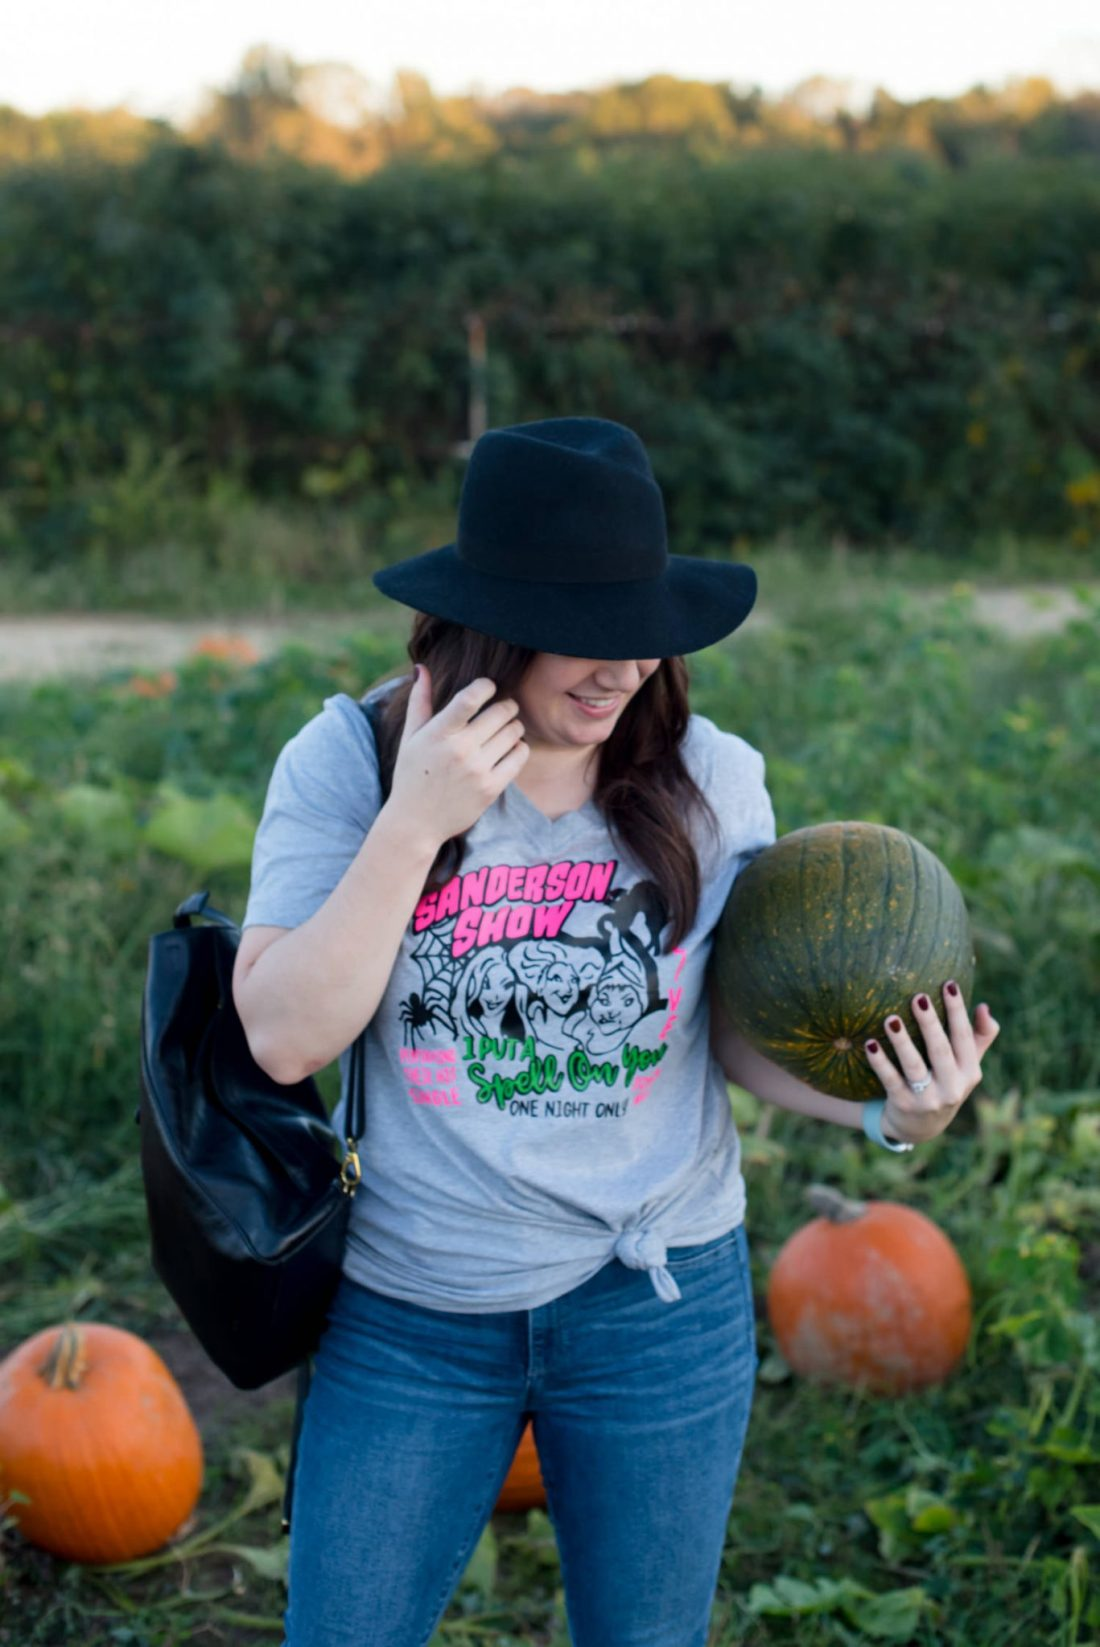 #halloween #hocuspocus | 15 Hocus Pocus Shirts to Wear This Halloween featured by top Atlanta fashion blog Miss Molly Moon